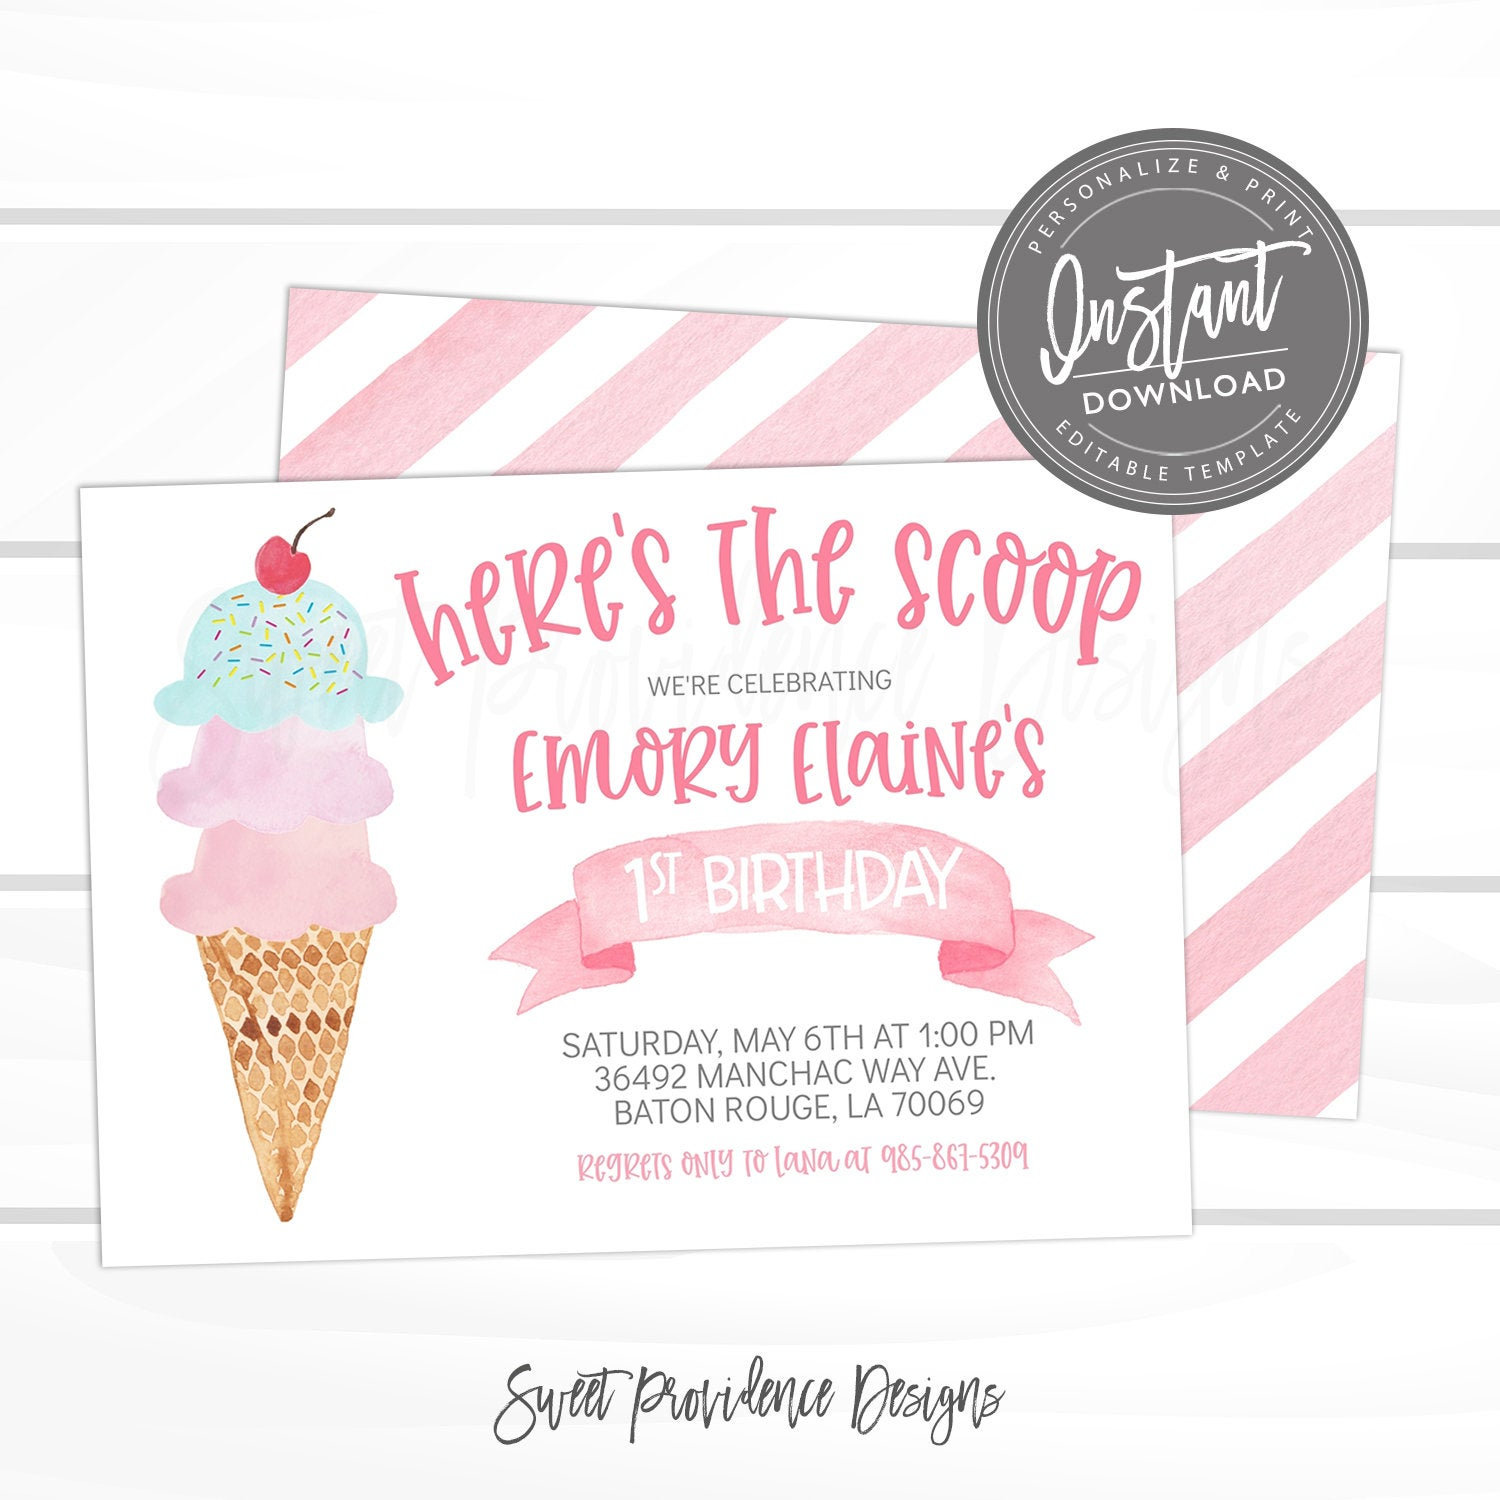 ice cream birthday party invitation first birthday pink ice cream social invite editable virtual birthday invite template instant access